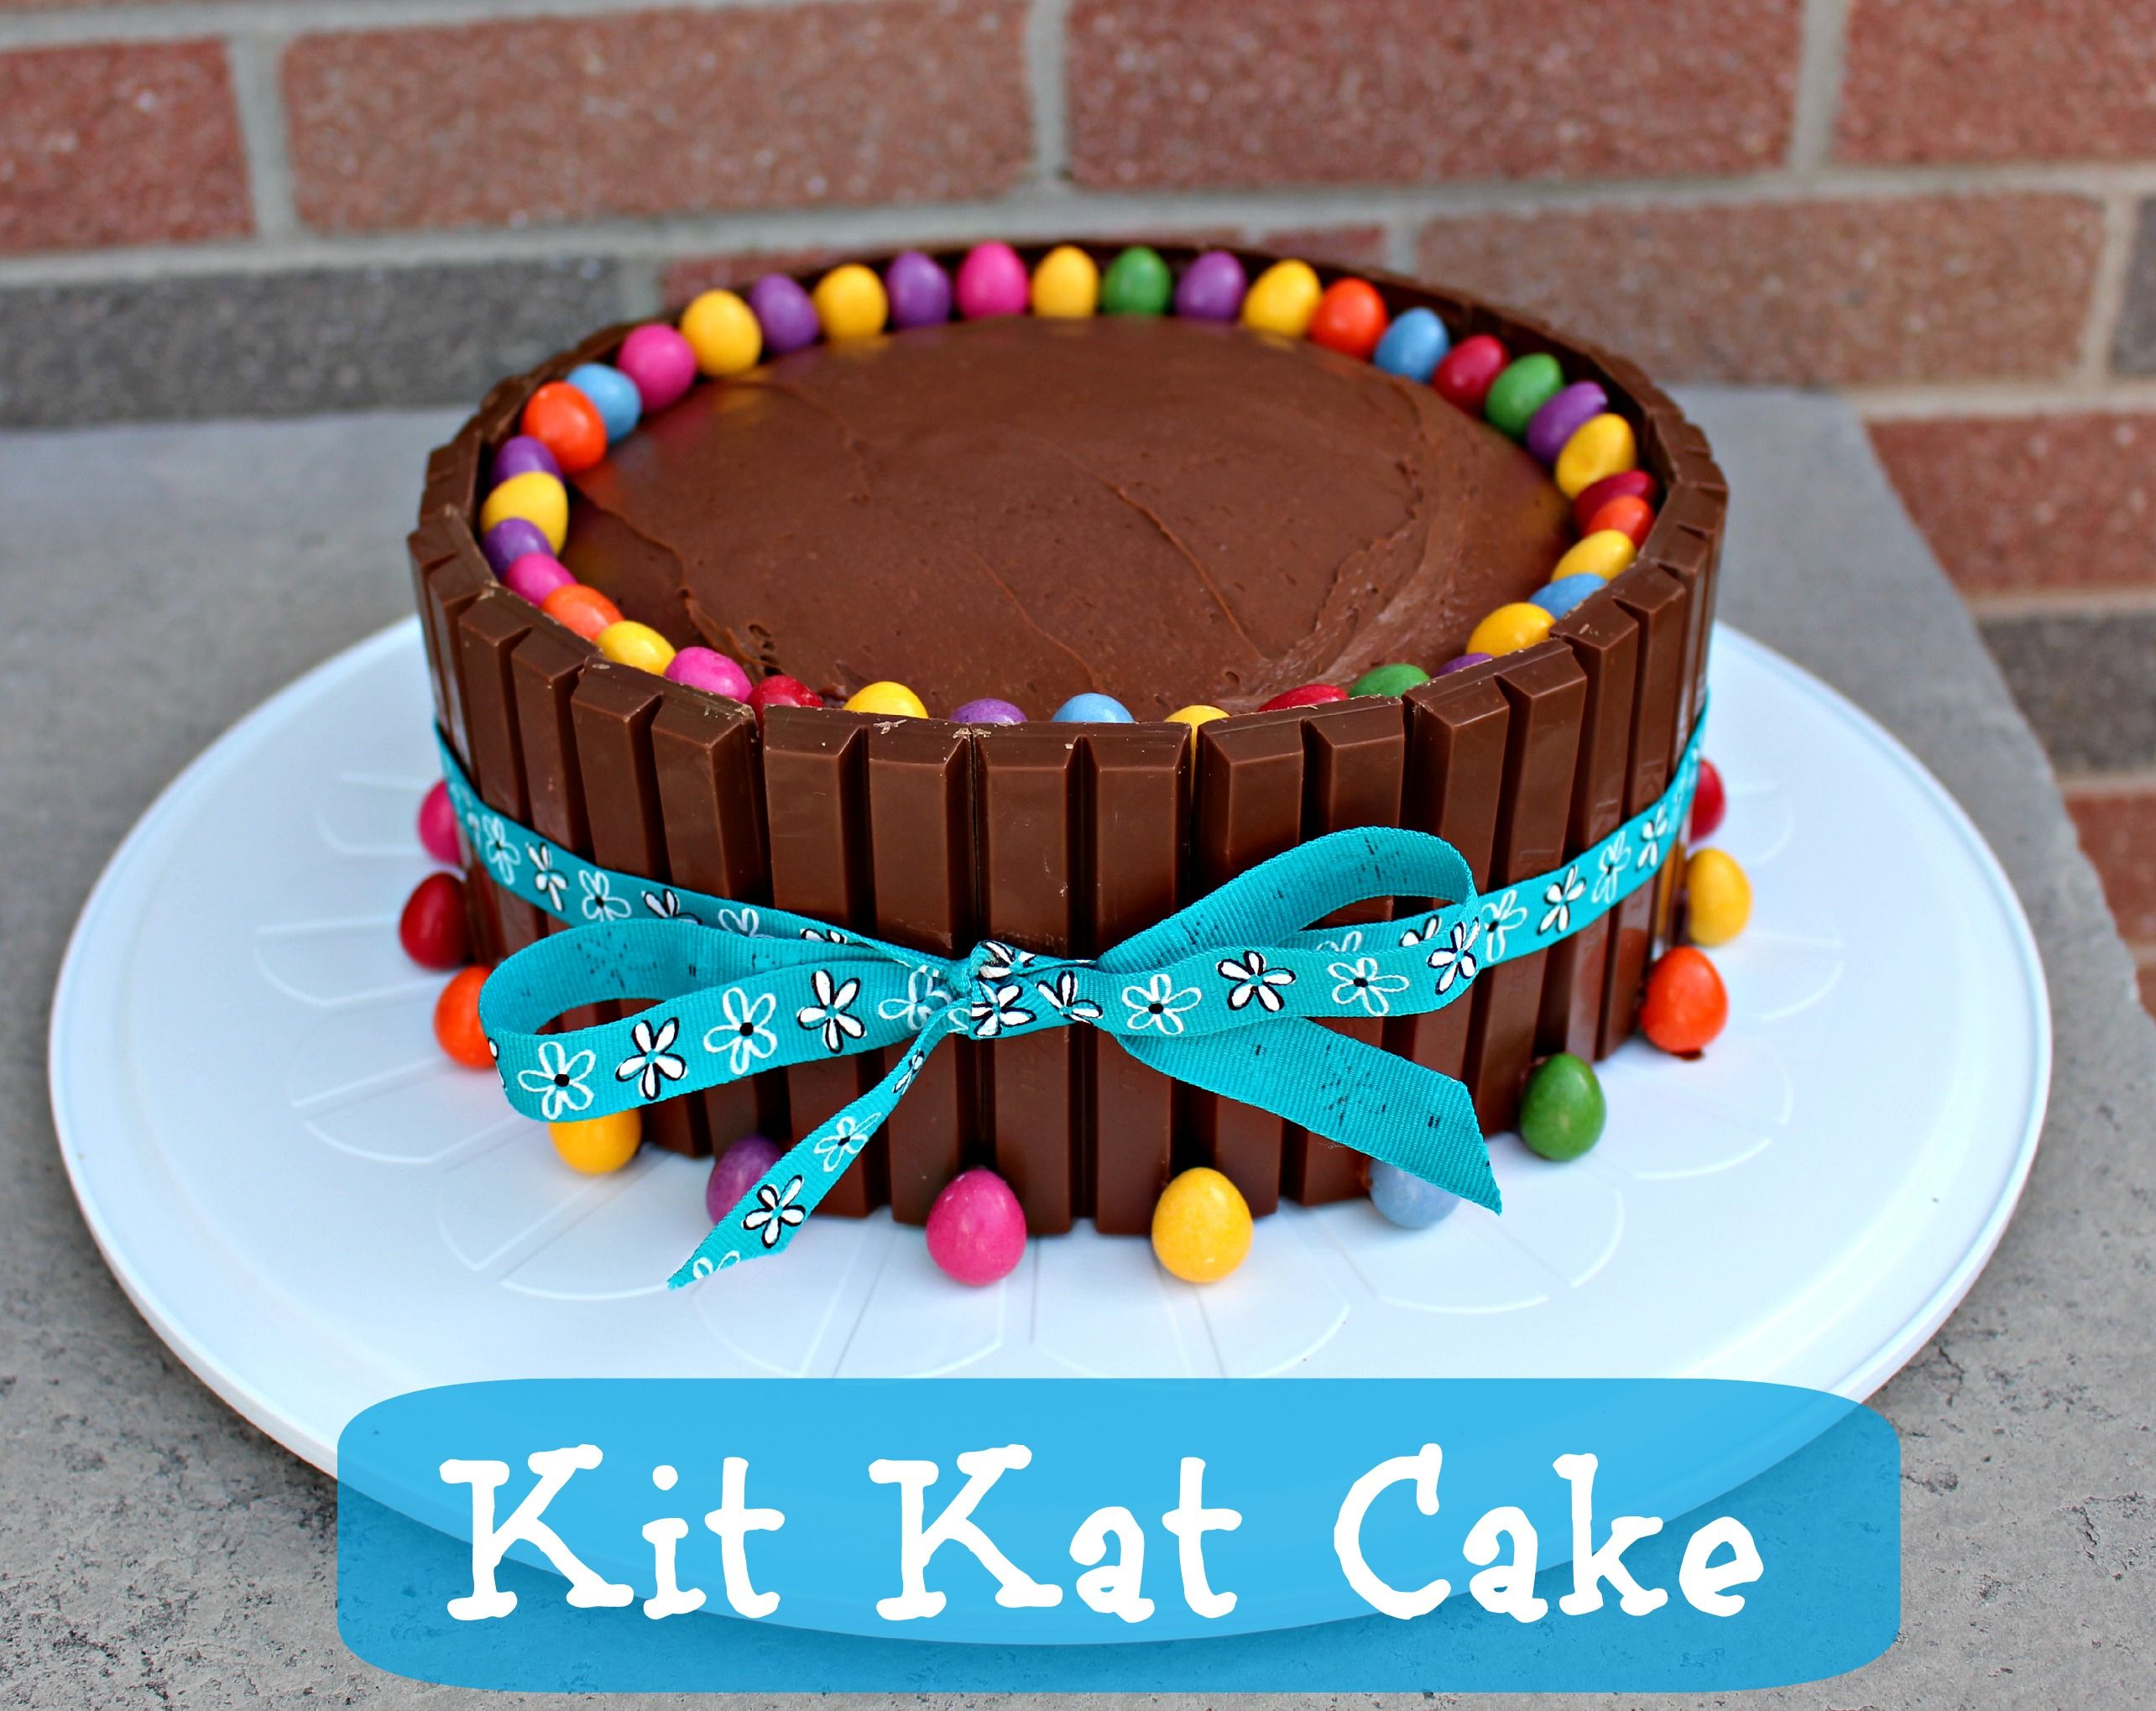 Cake Decorating Ideas Boy Birthday : Kit Kat Cake Recipe Cake birthday, Birthday cakes and Teen